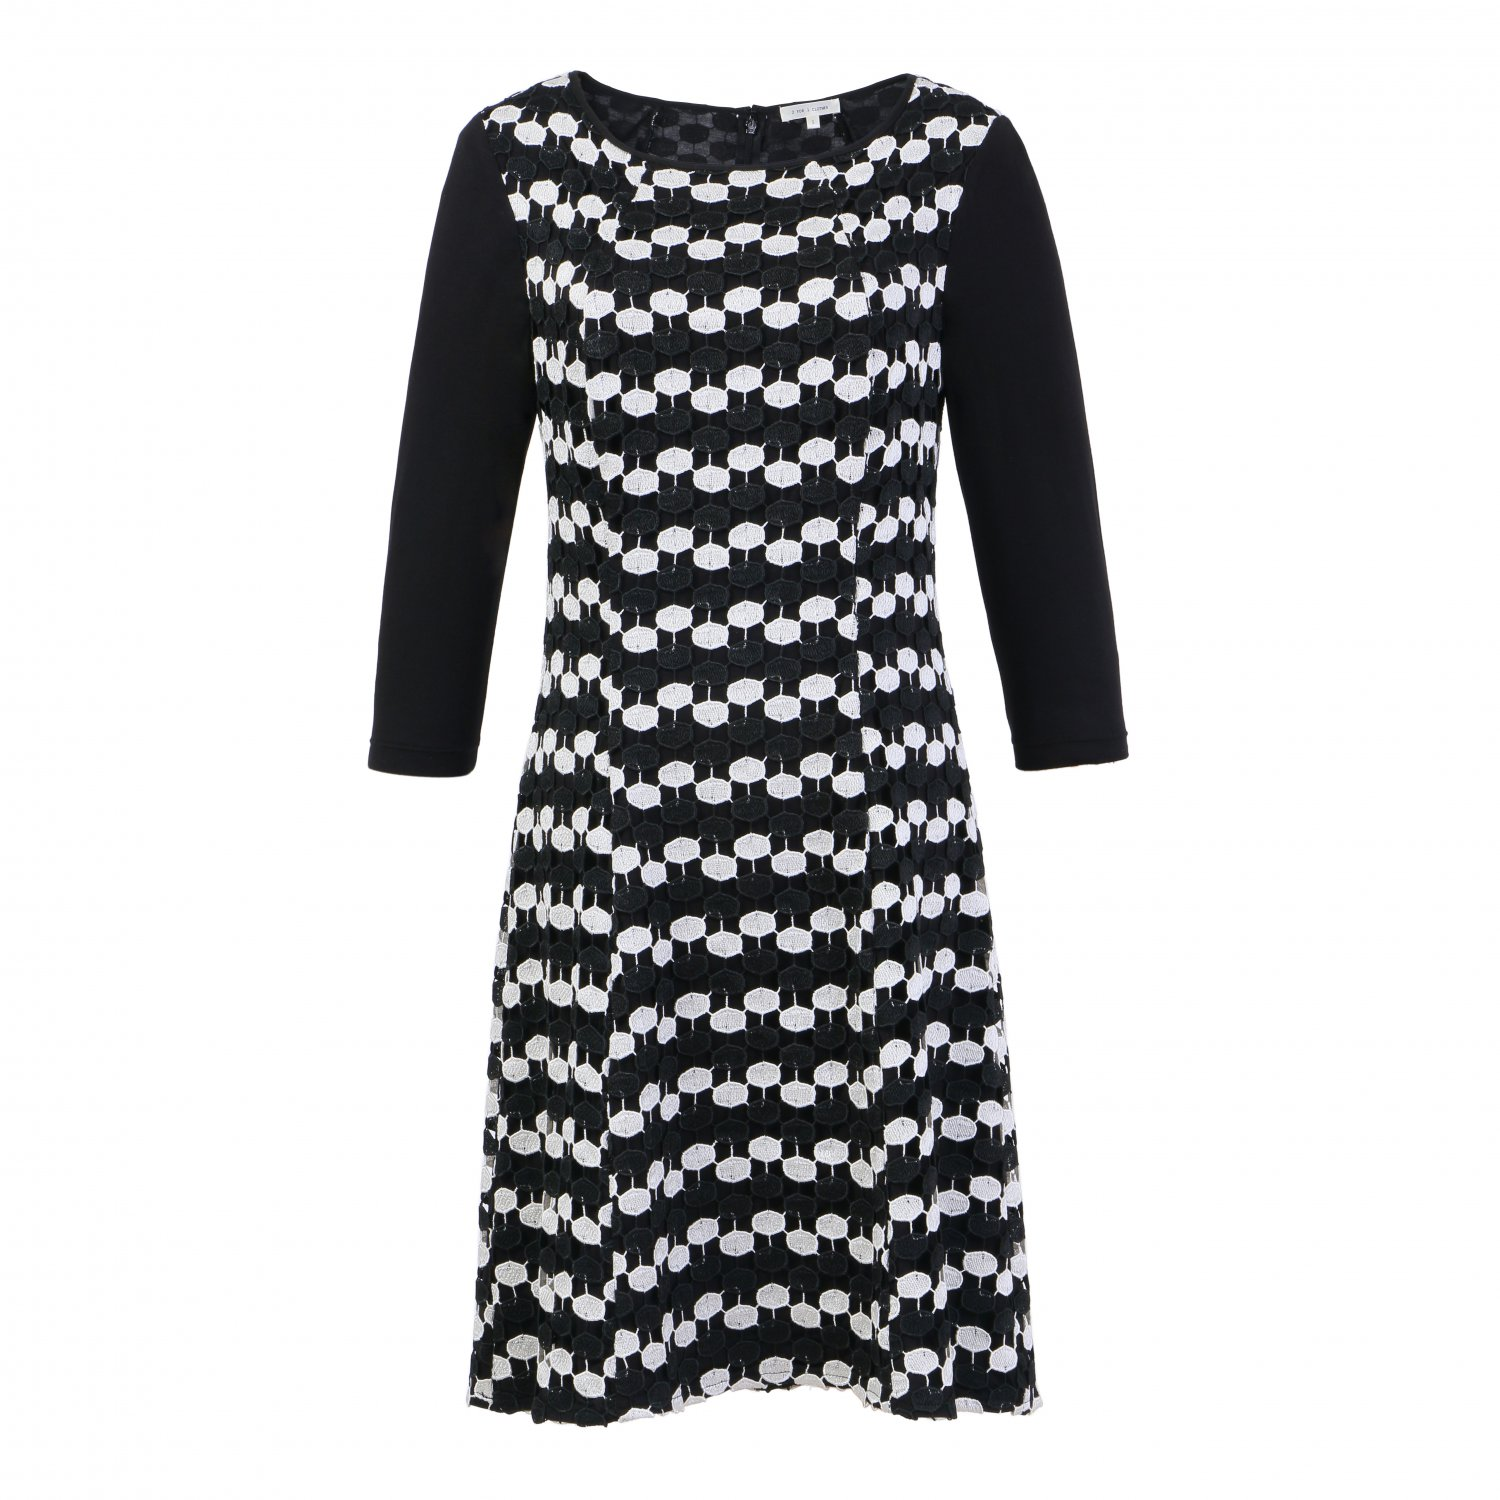 2 FOR 1 CLOTHES Lace knit dress